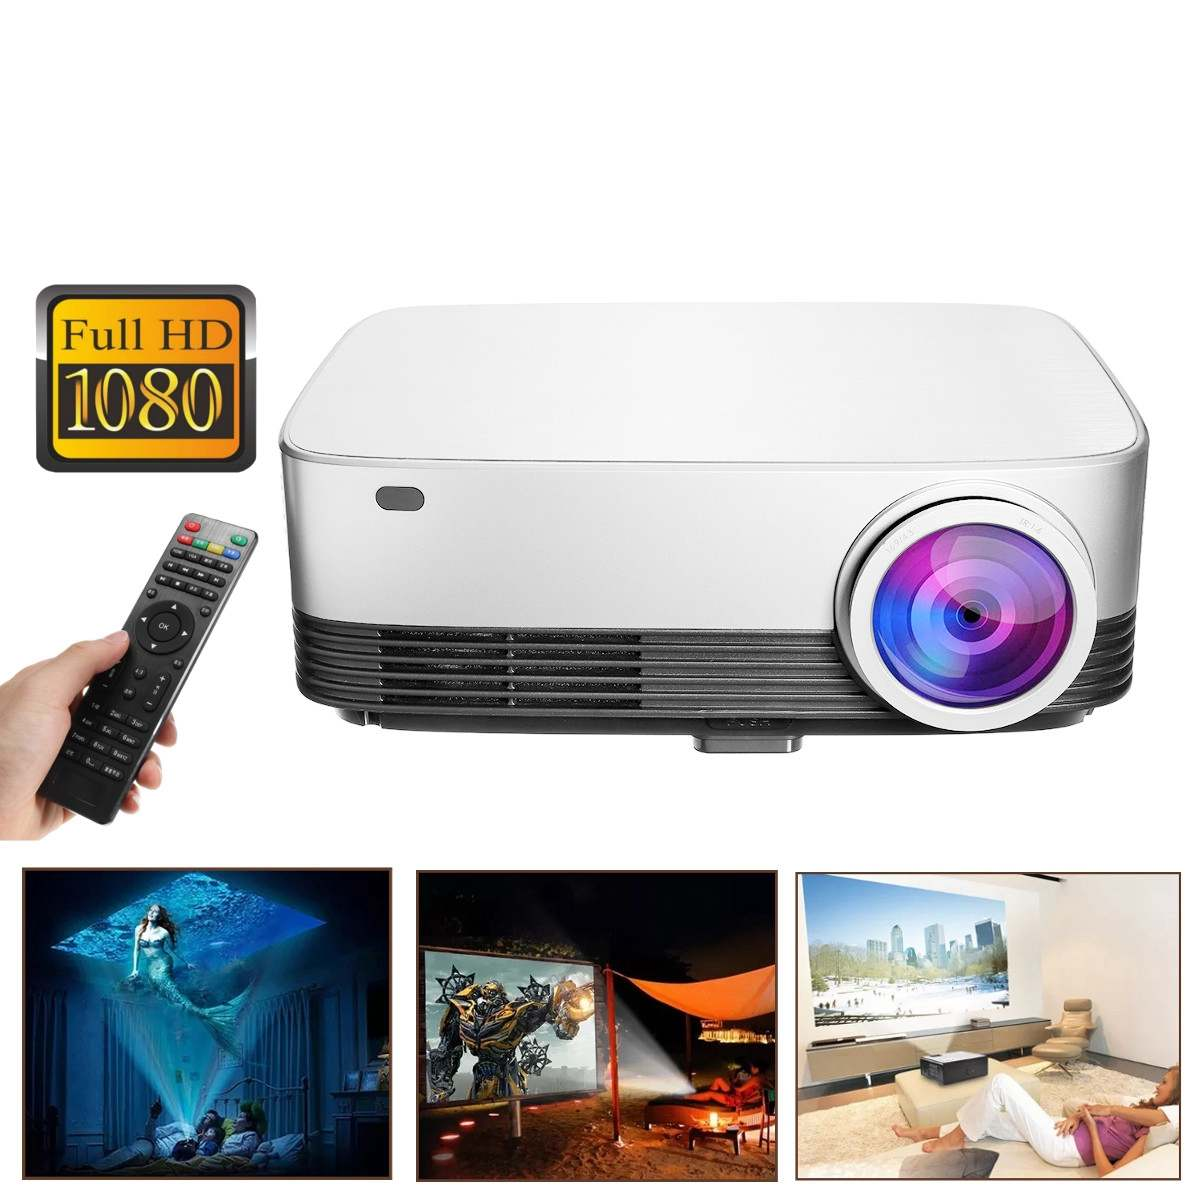 Claite L428 Lcd Projector 5.8 Inch Voor Office/home Smart Android Projector 1280*800 Resolutie 1g + 8g